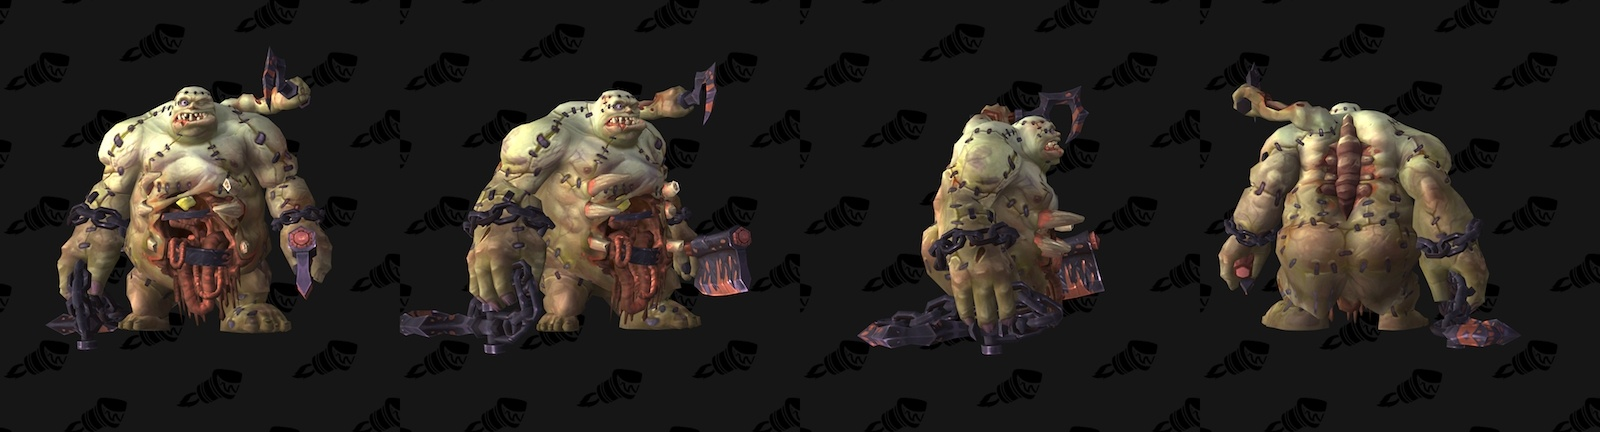 72 PTR Build 23478 Artifact Traits Updated Abomination Model Ban